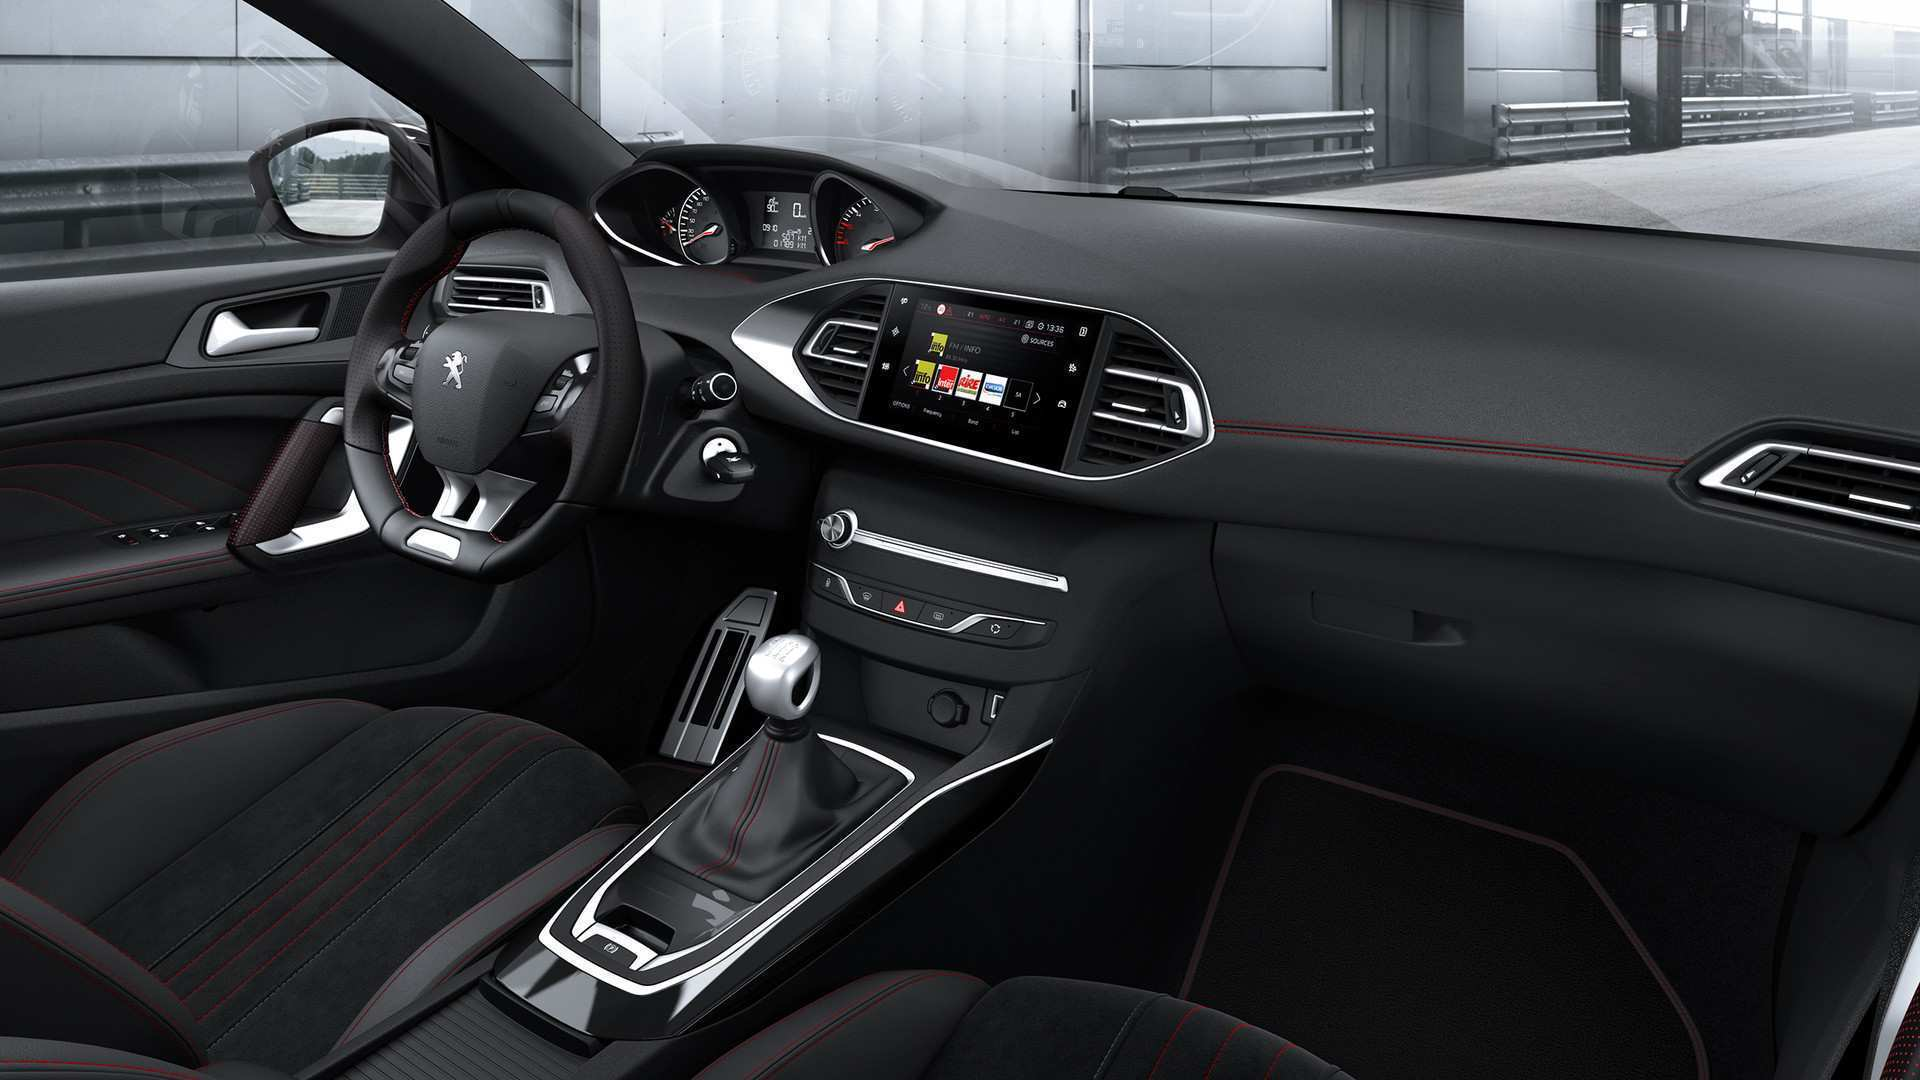 82 The Best 2019 Peugeot 308 Redesign